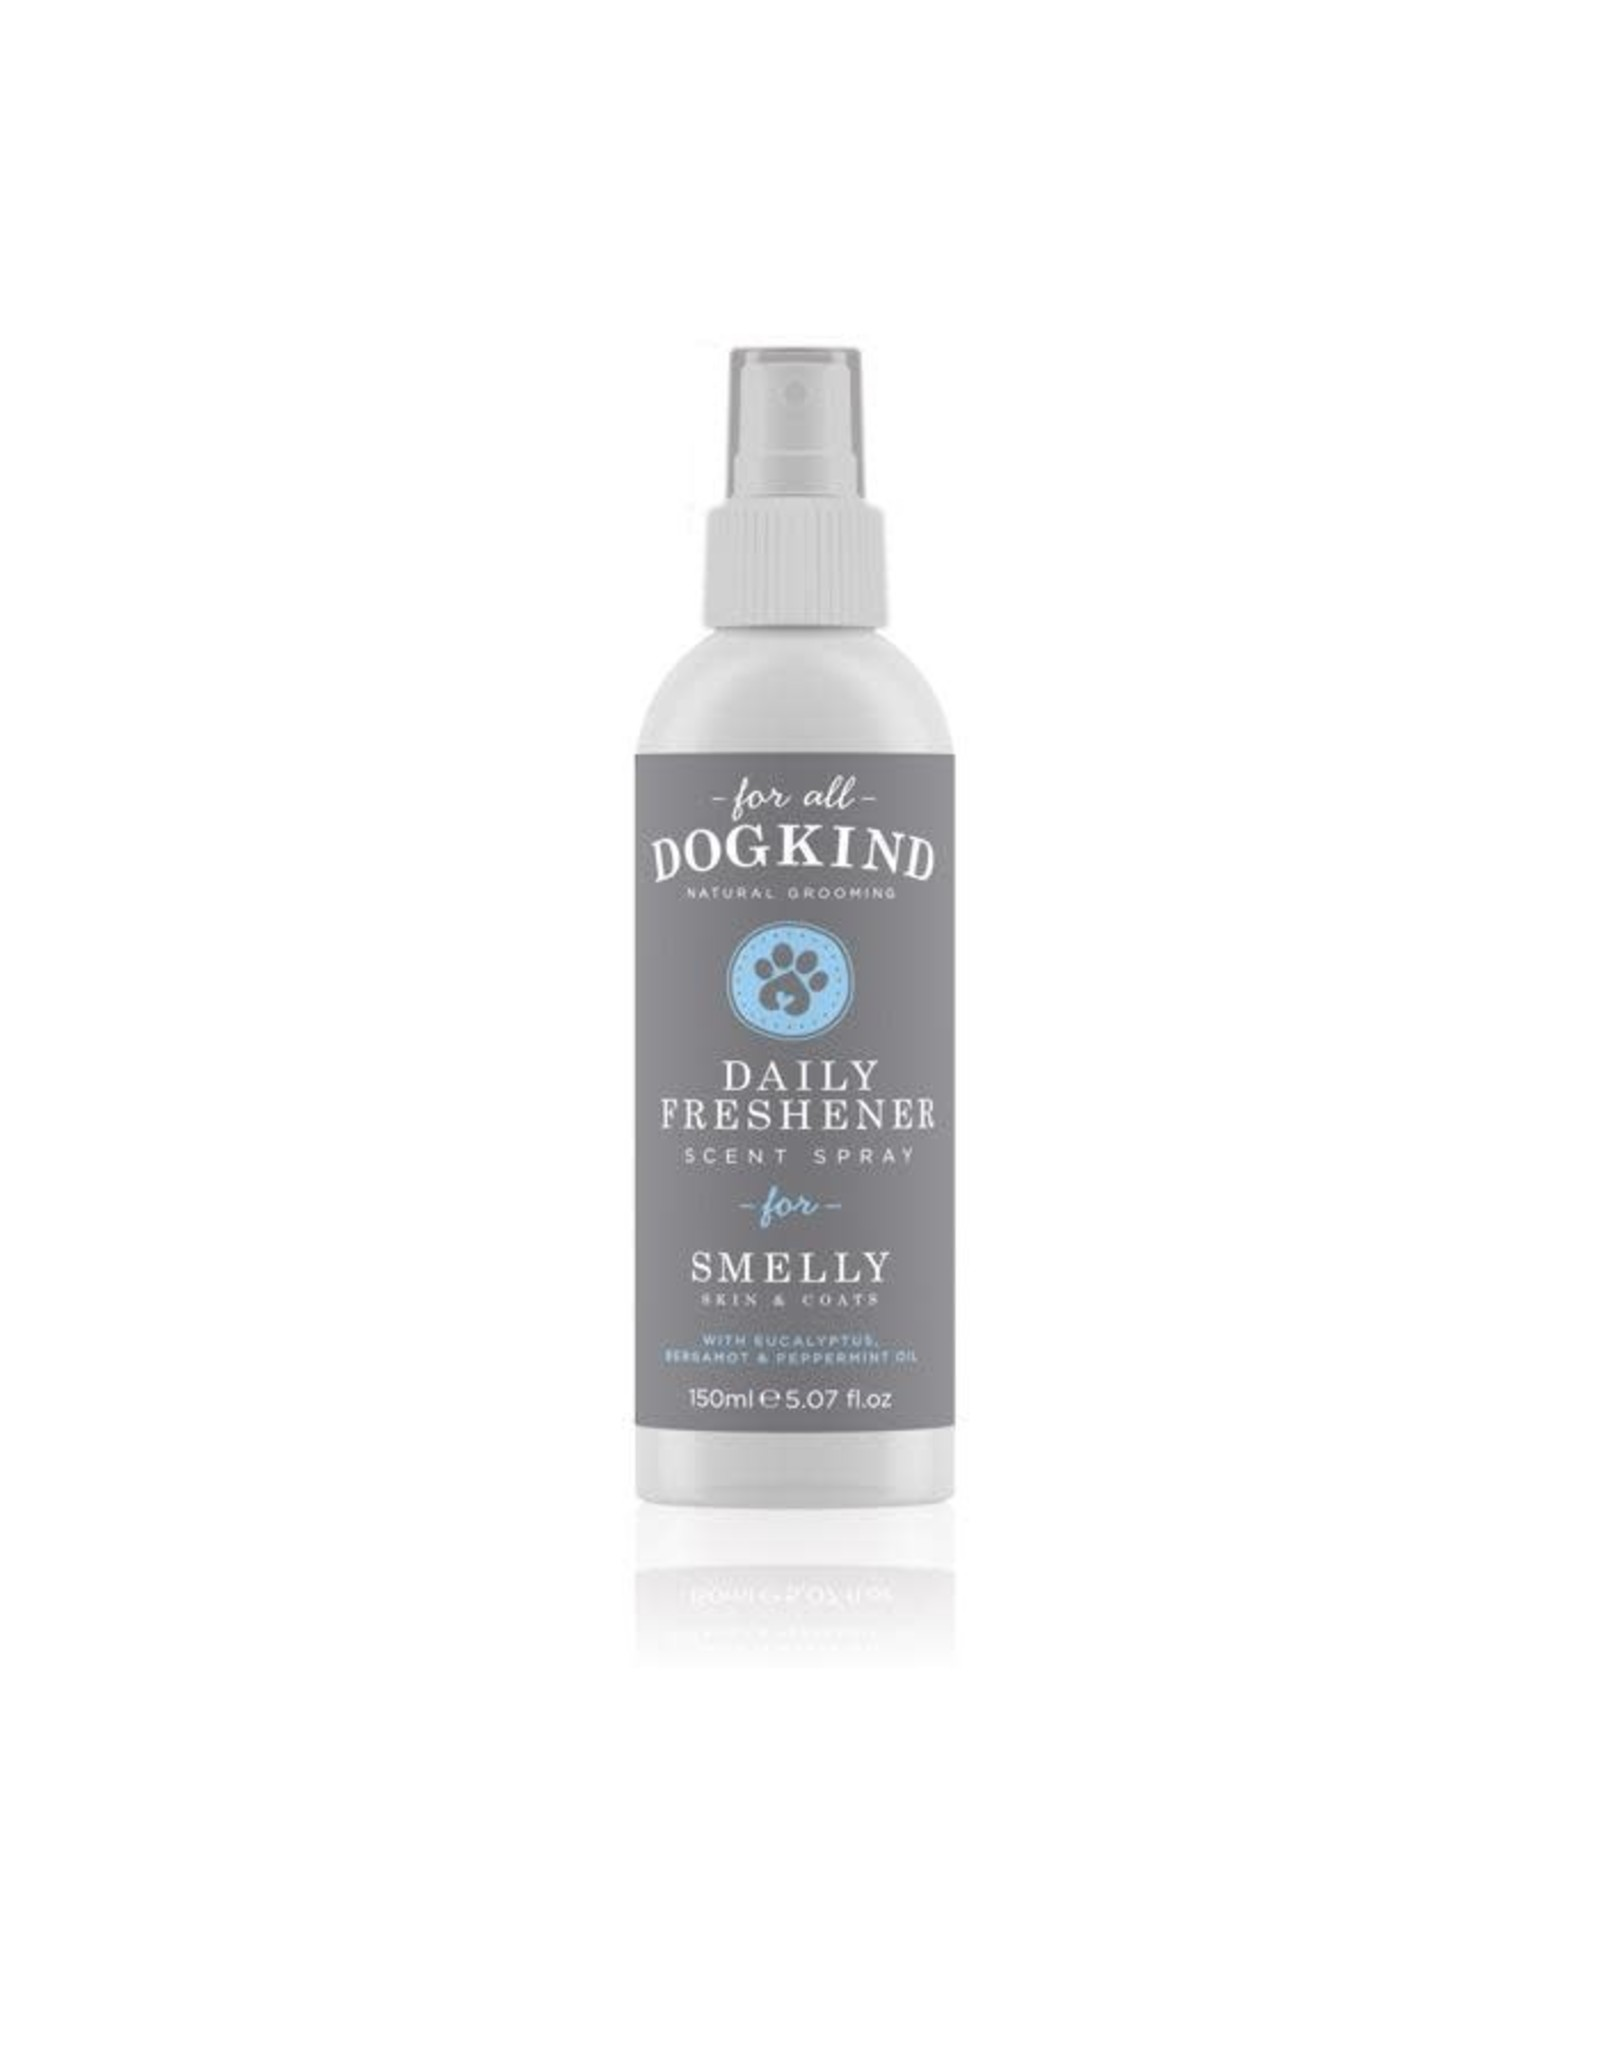 For All DogKind Daily Freshener Scent Spray for Smelly Dogs 150ml